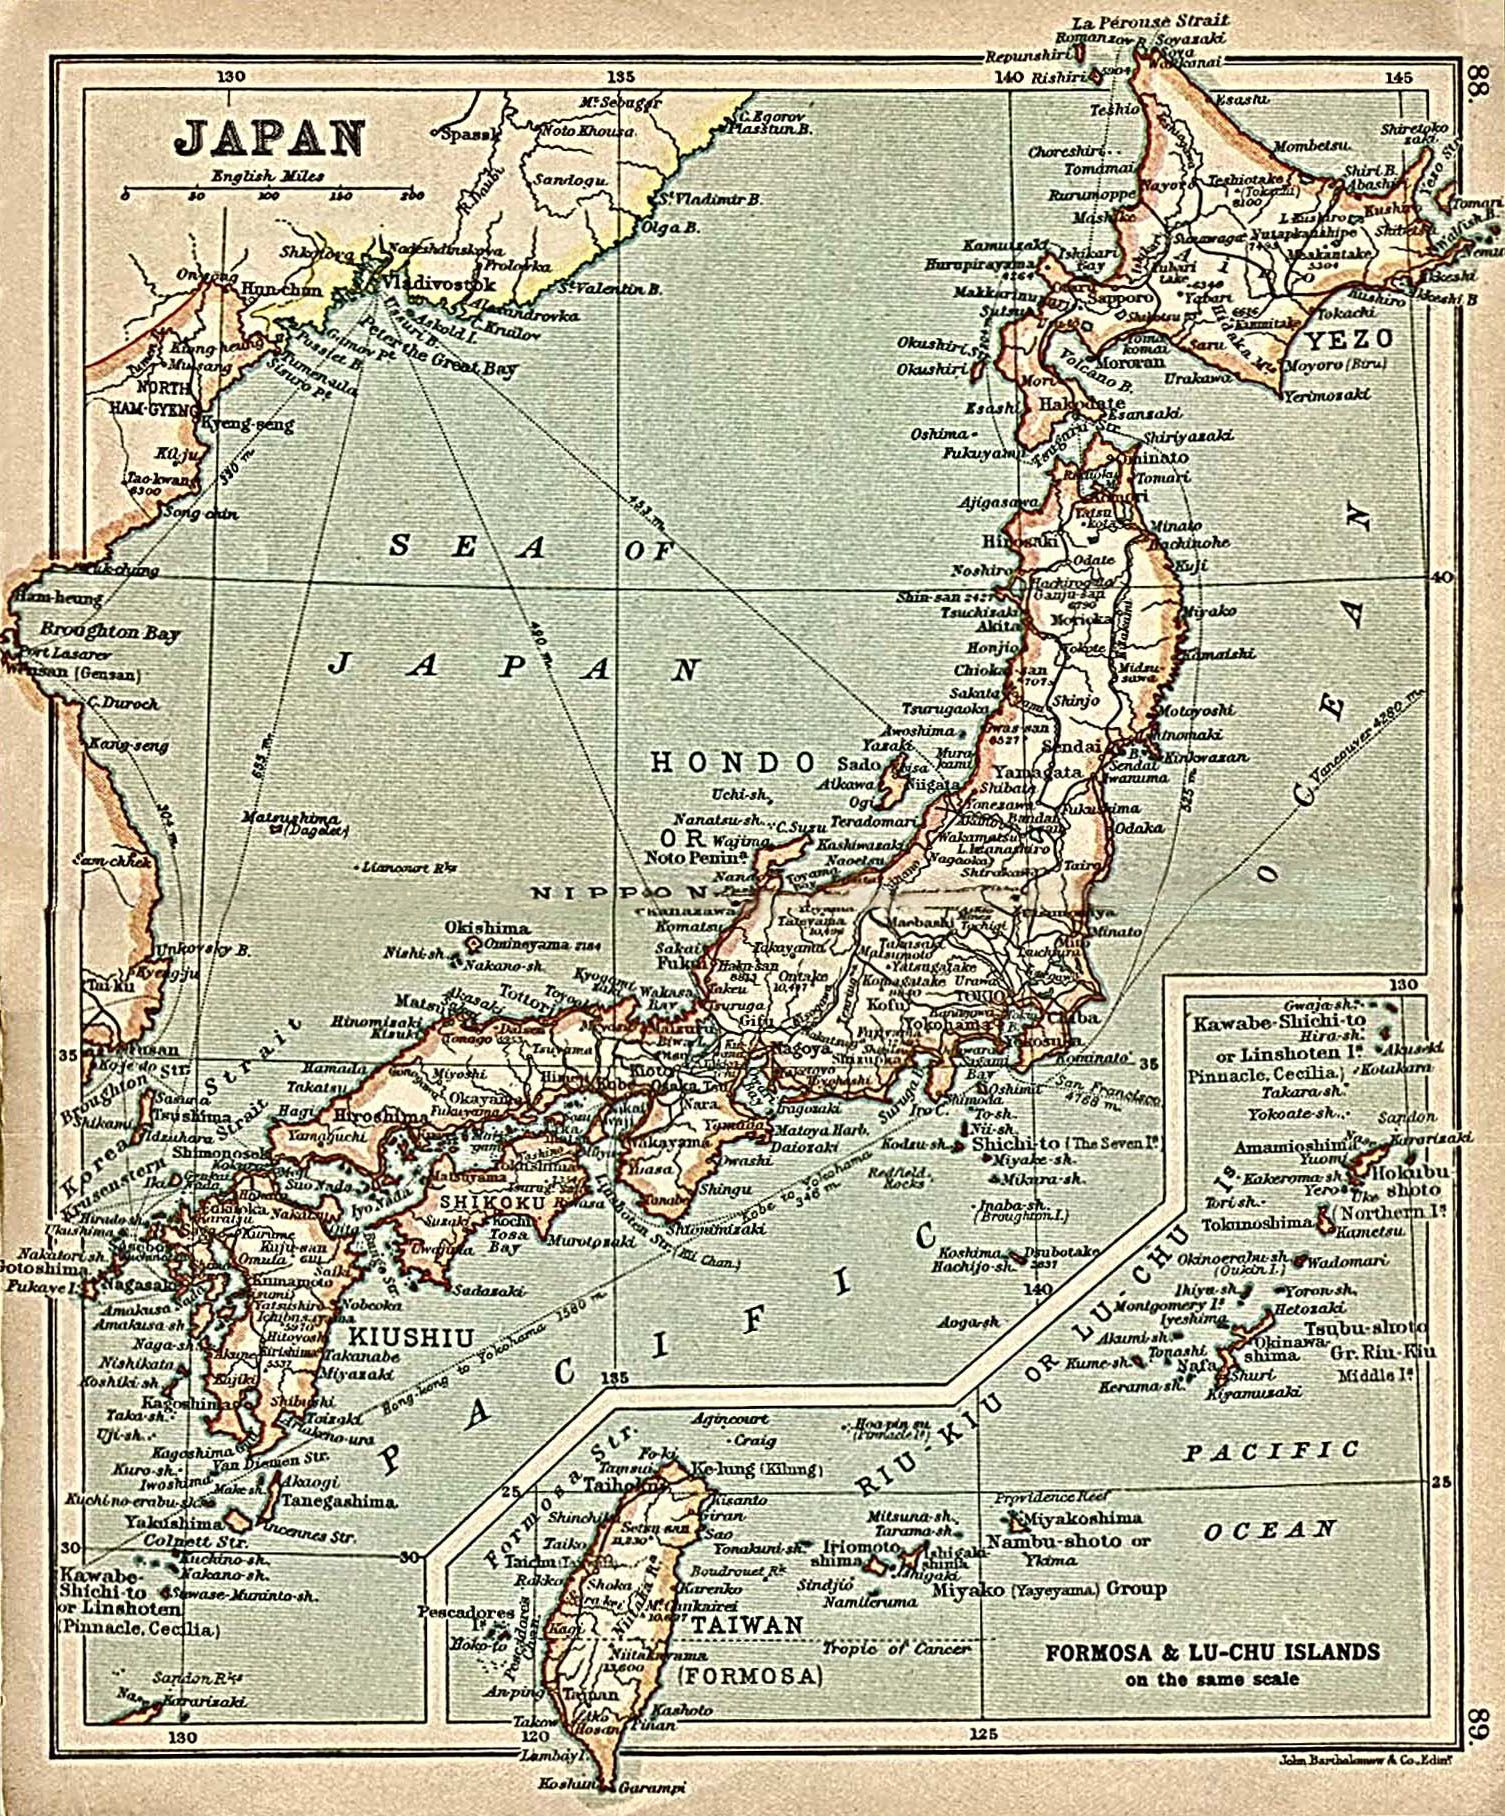 Japan With Inset Map Formosa 年的日本地圖其中包括台灣 Ainu - Japan map 6